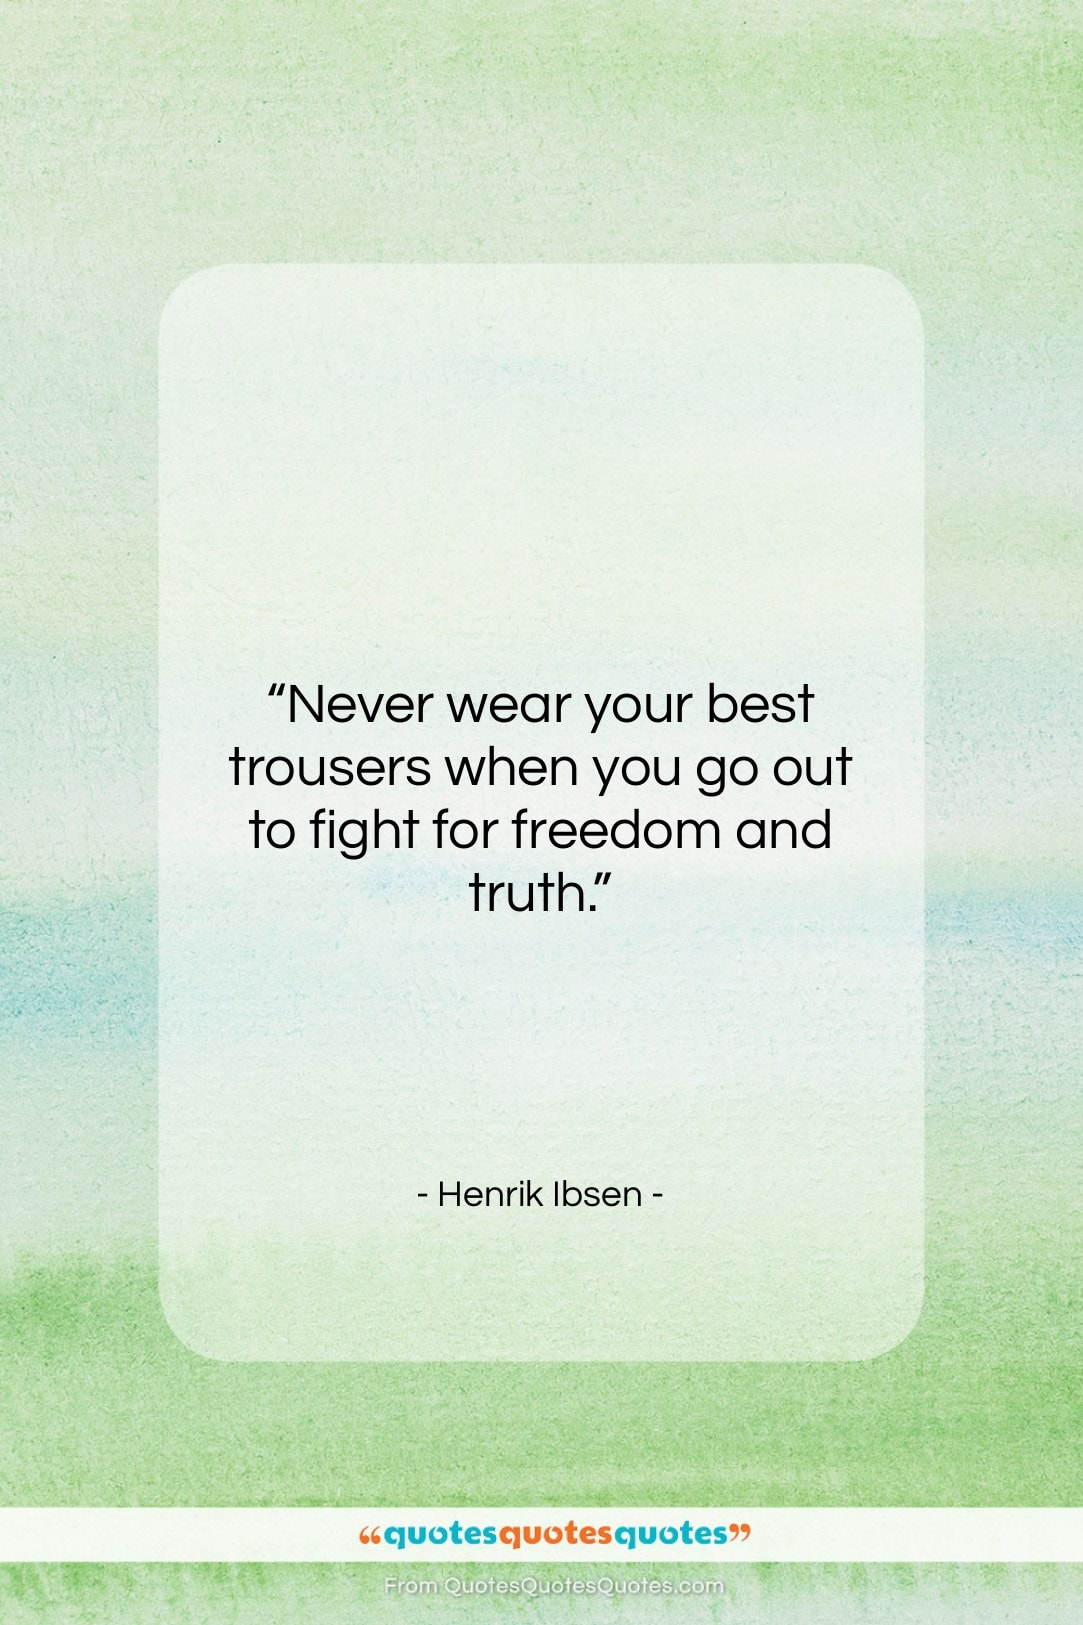 """Henrik Ibsen quote: """"Never wear your best trousers when you…""""- at QuotesQuotesQuotes.com"""